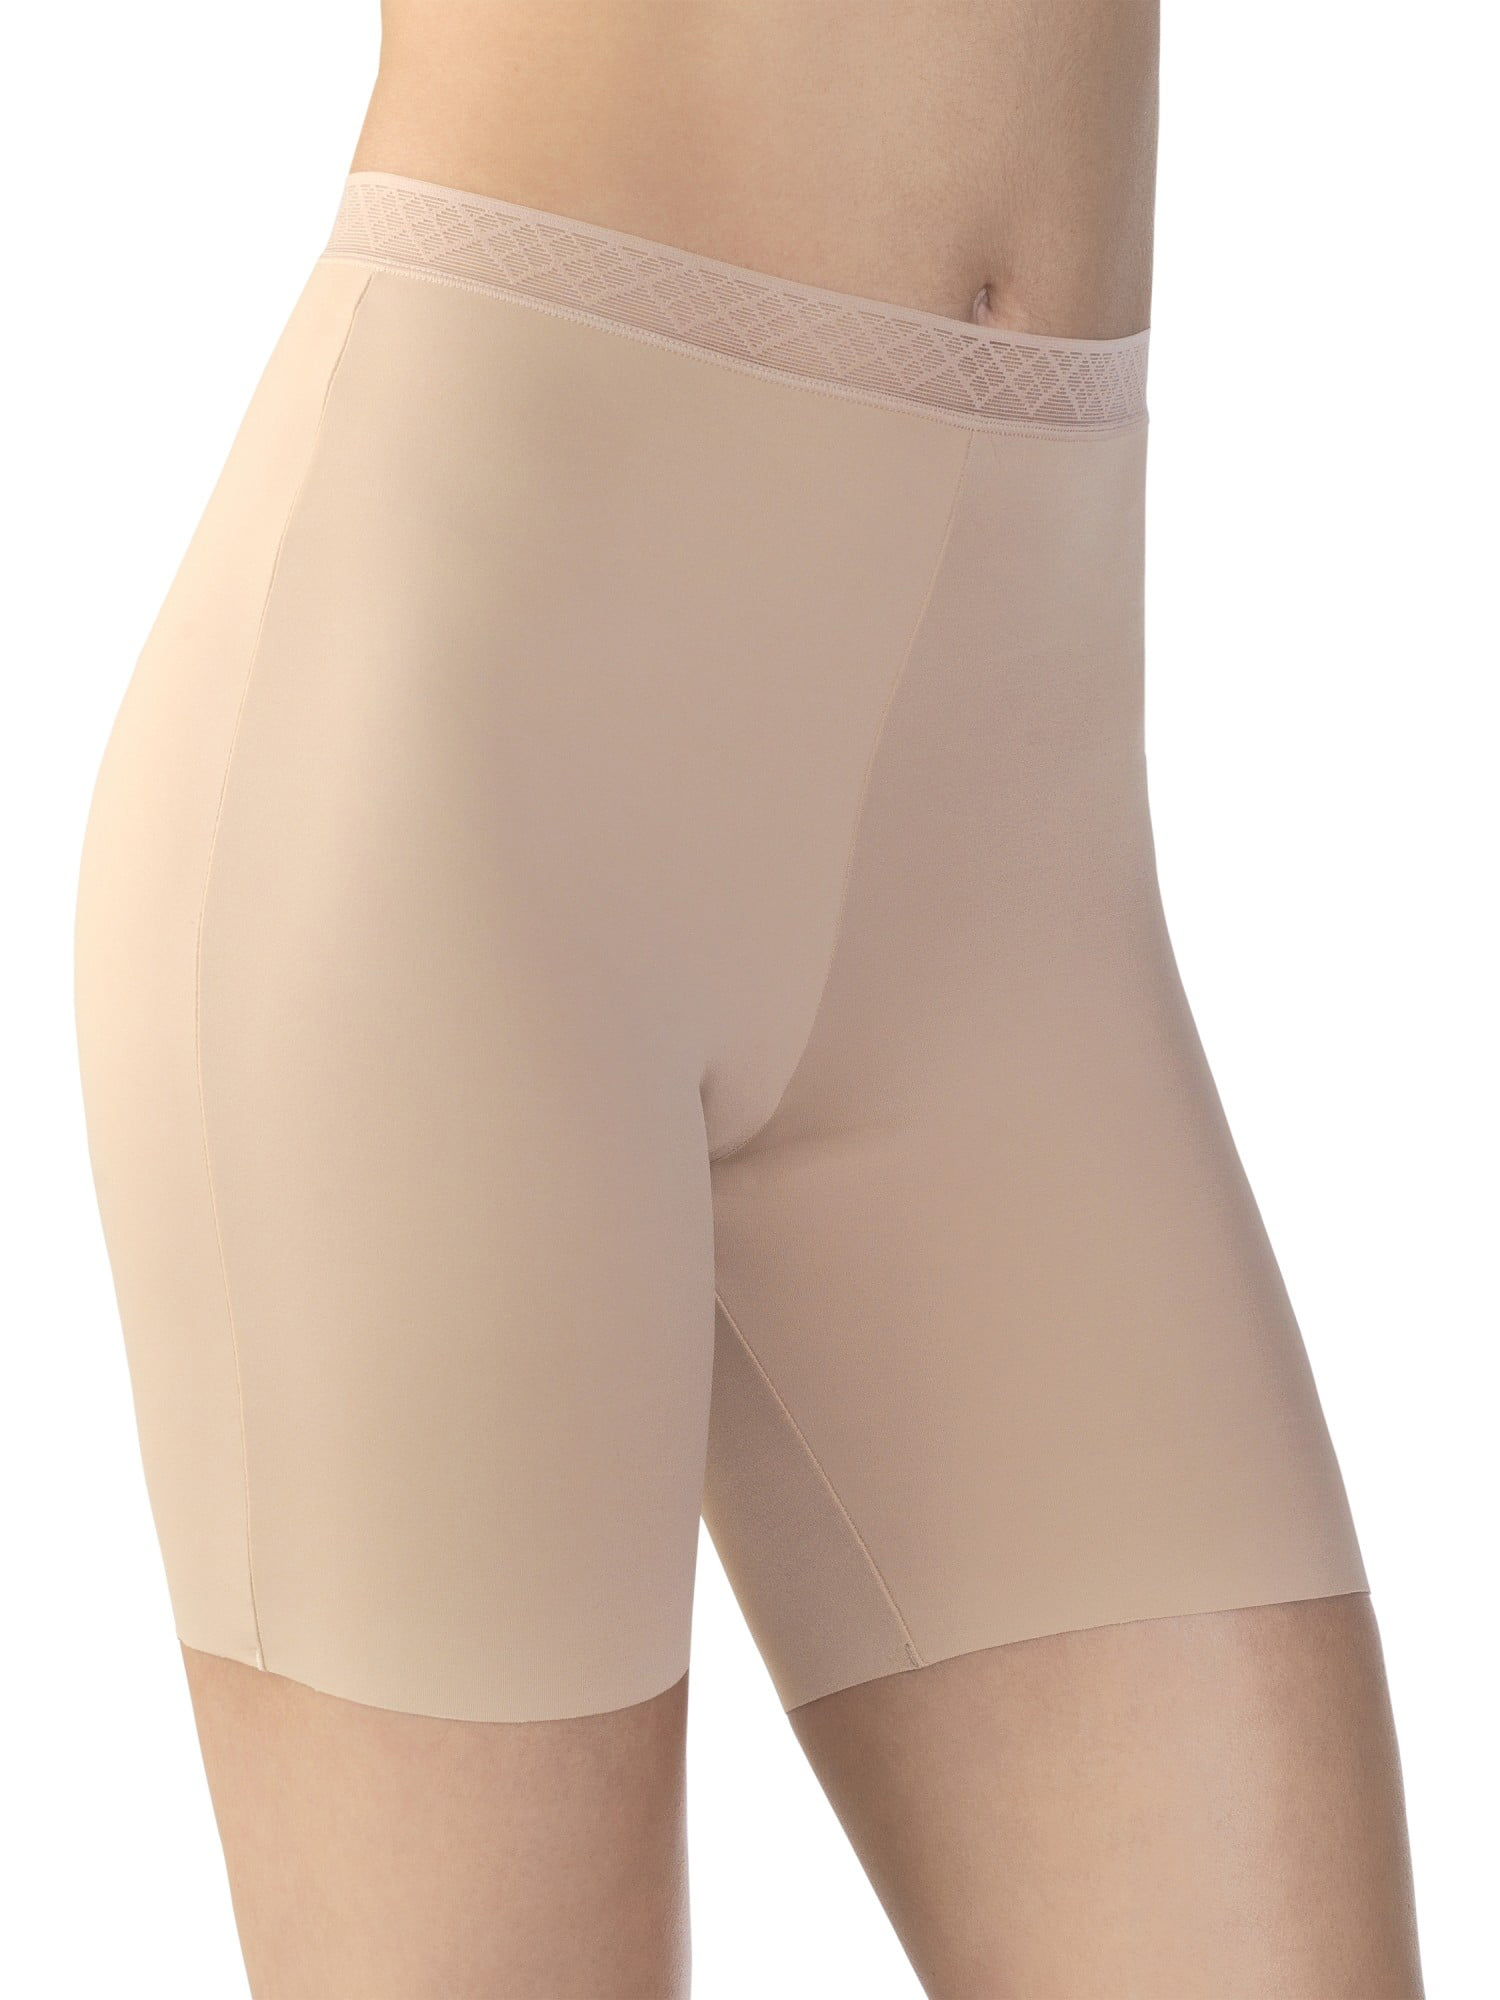 Vassarette Womens Invisibly Smooth Slip Short Panty 12385